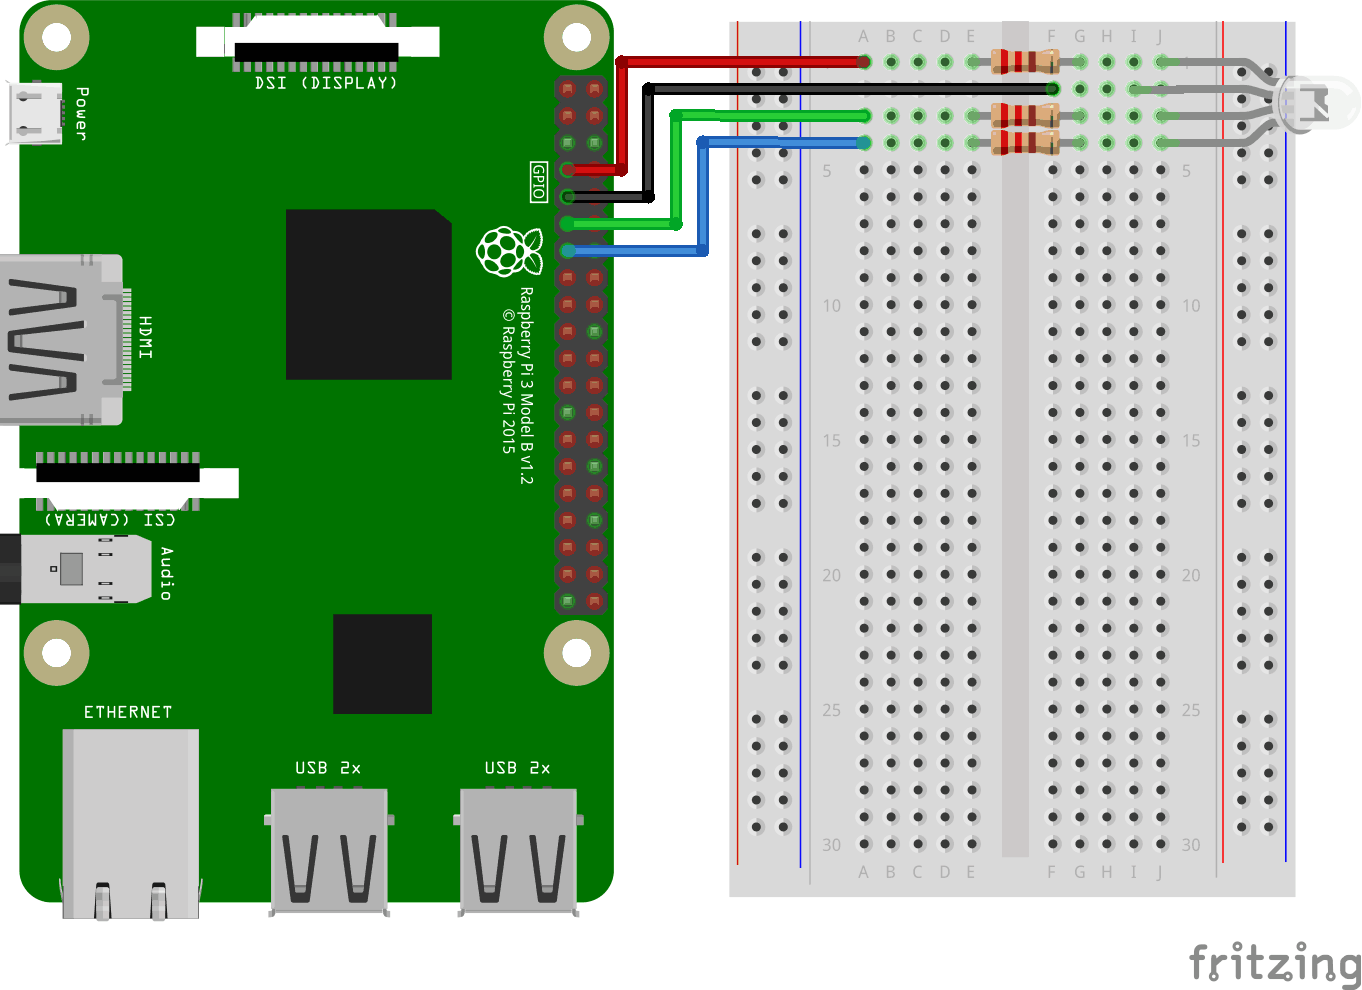 Node js Raspberry Pi RGB LED and WebSocket